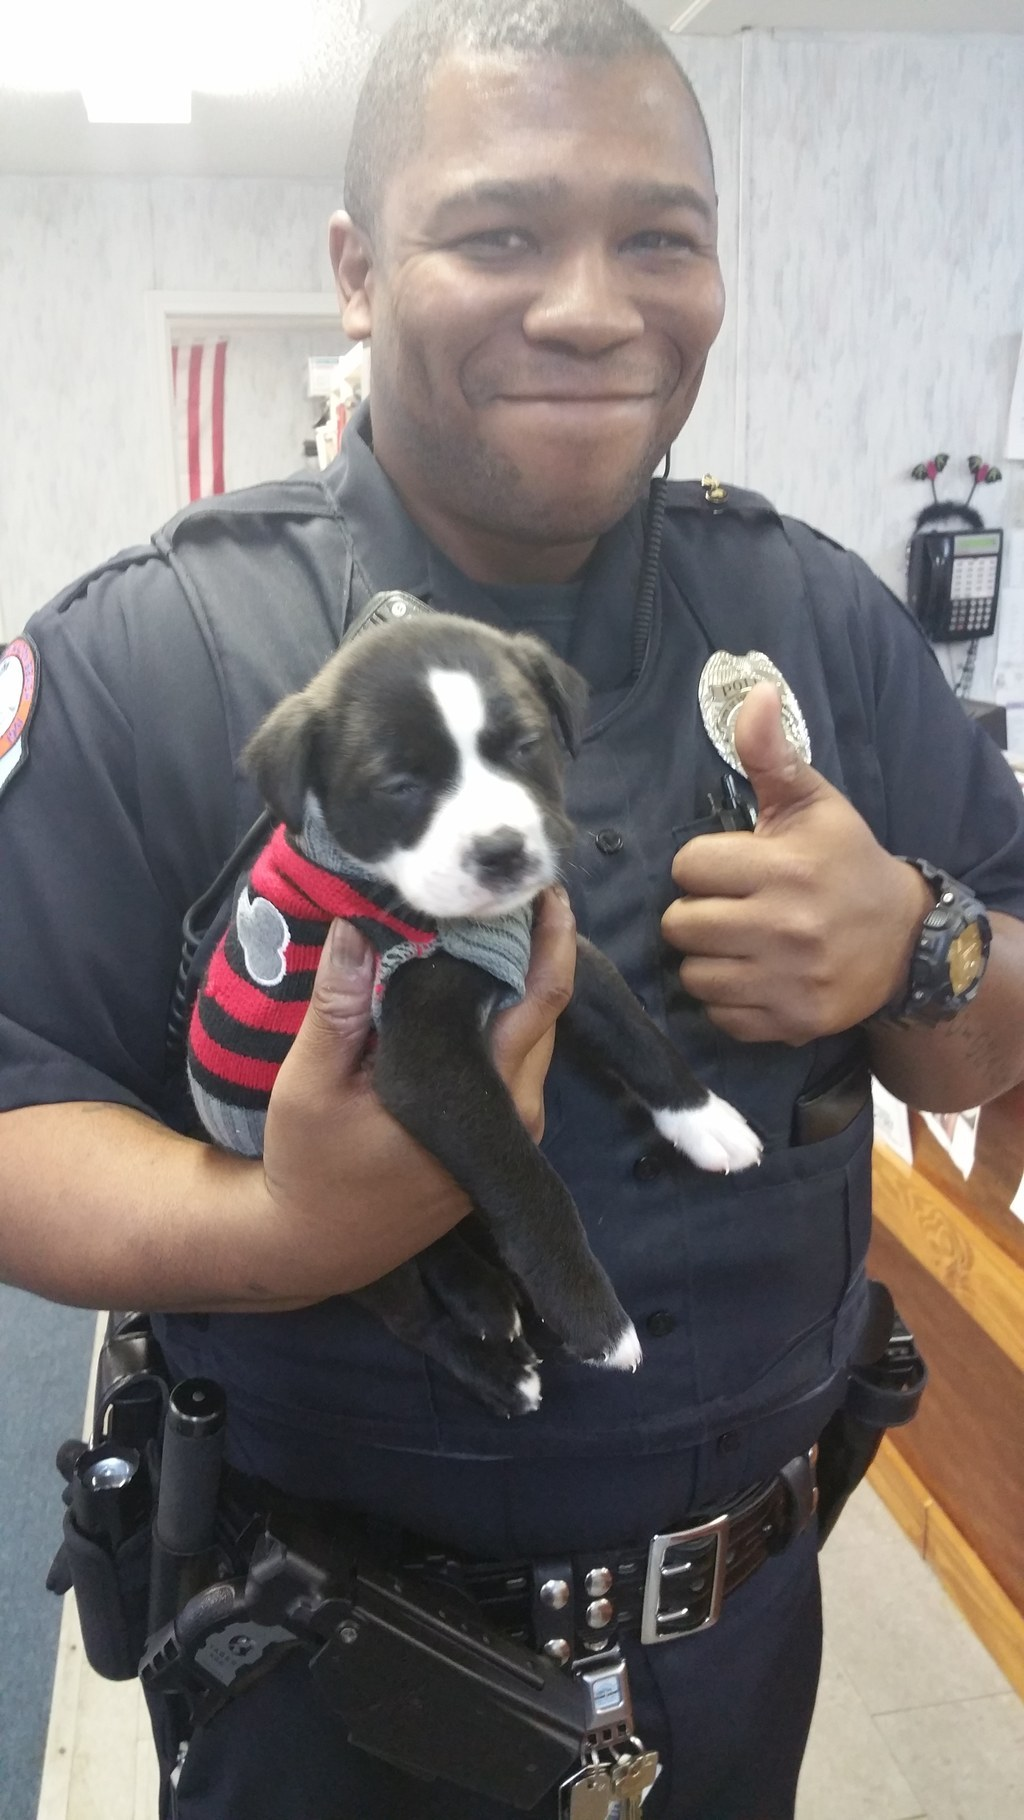 This Police Officer Showed Up To A Routine Call And Ended Up Falling In Love With A Puppy